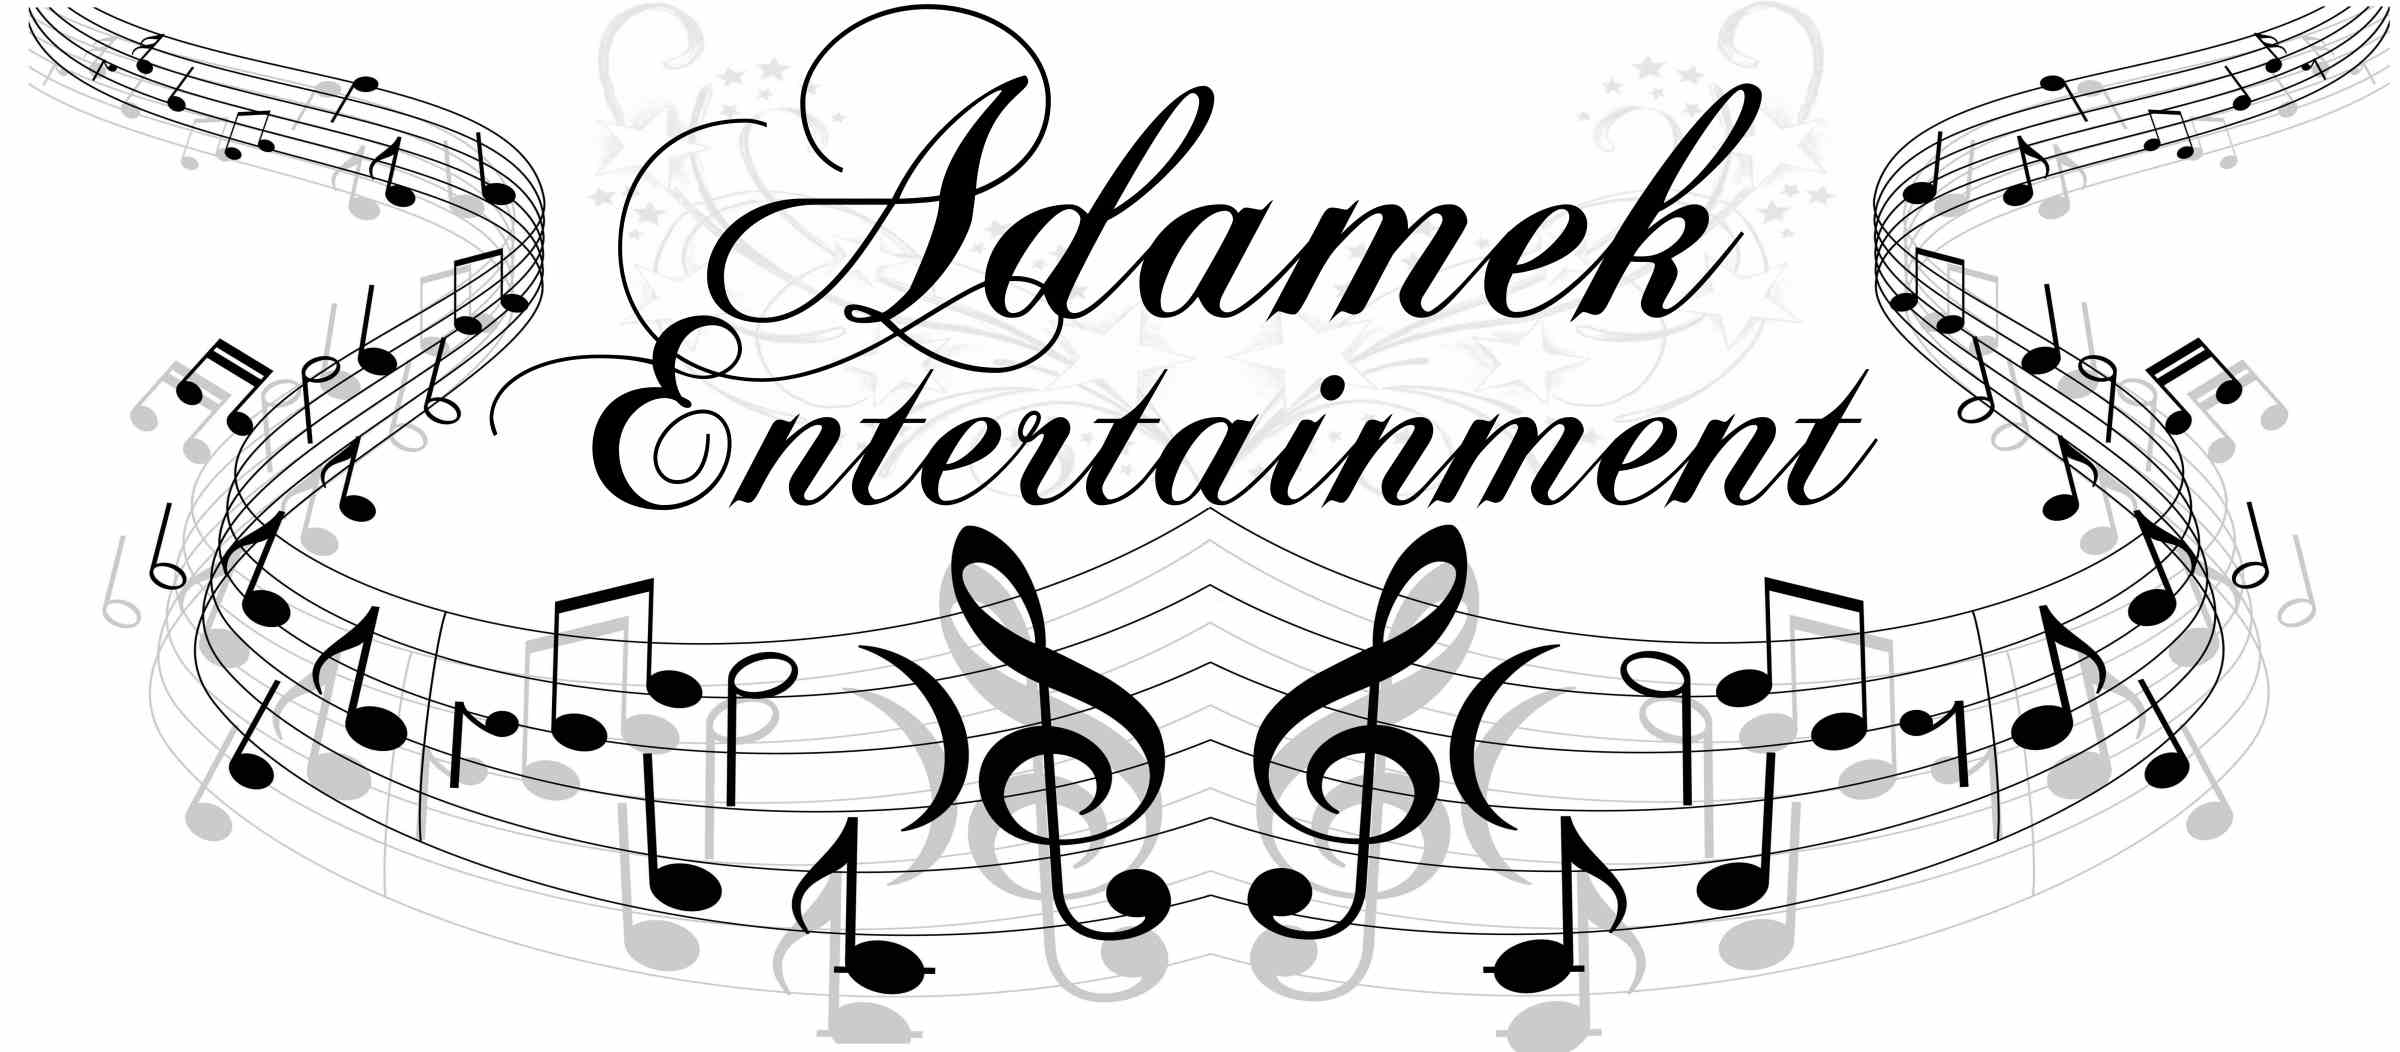 Adamek ENTERTAINMENT NRW IMPRESSUM LOGO